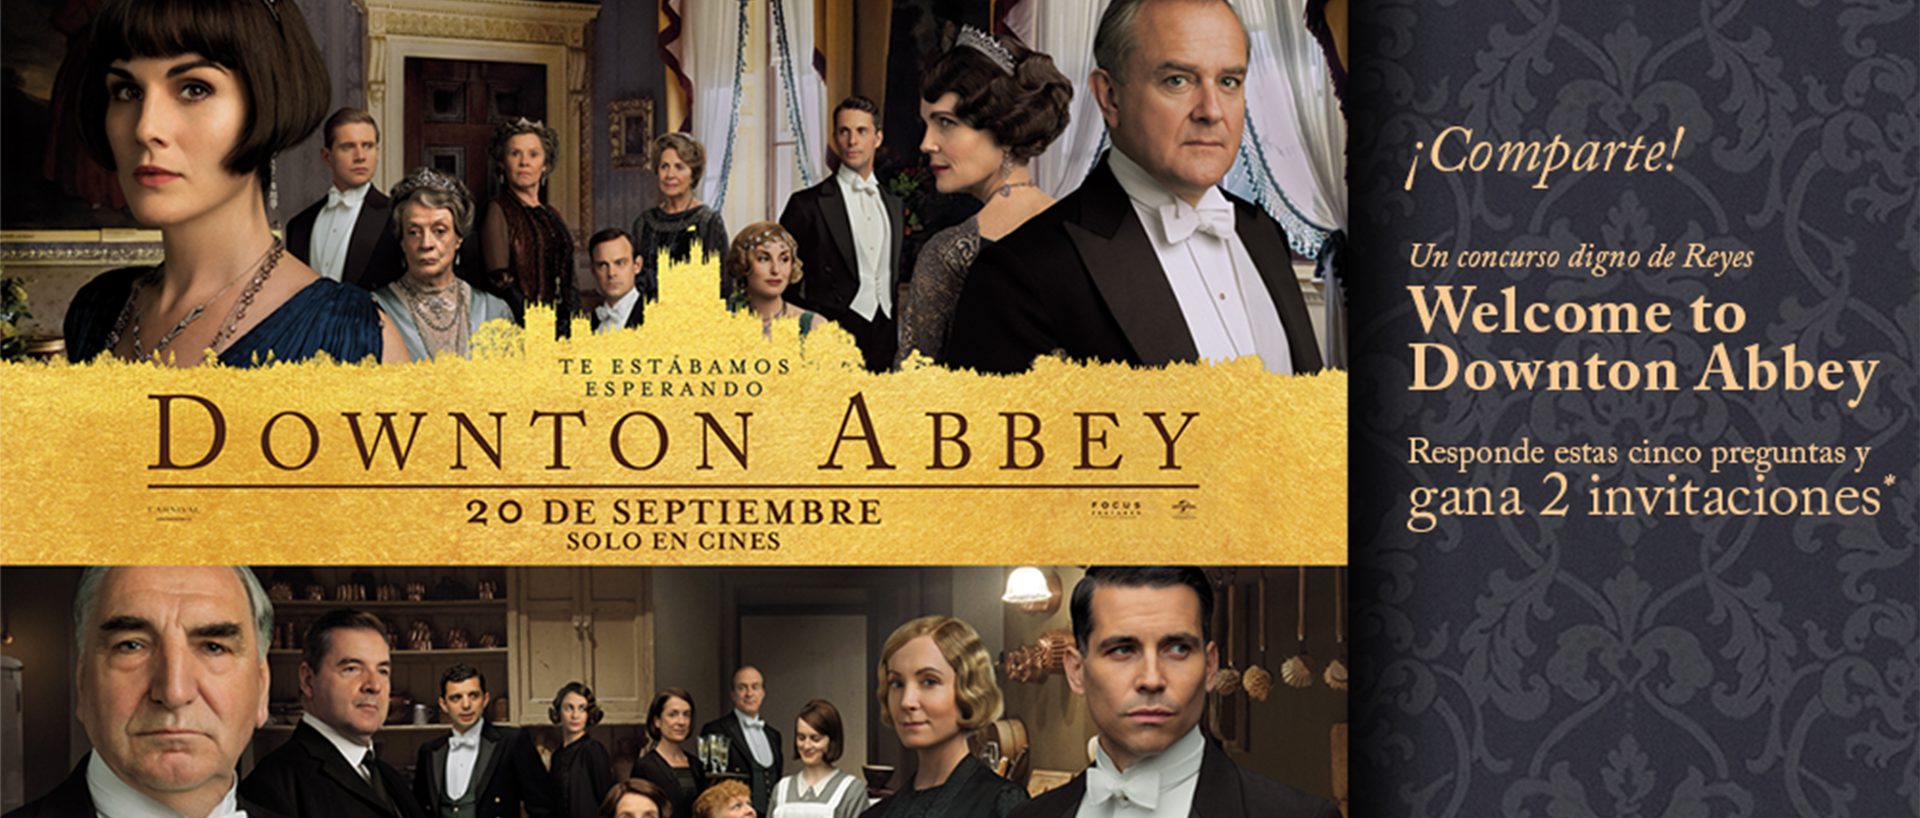 Leon_Comparte_DowntonAbbey1920x818_01.png